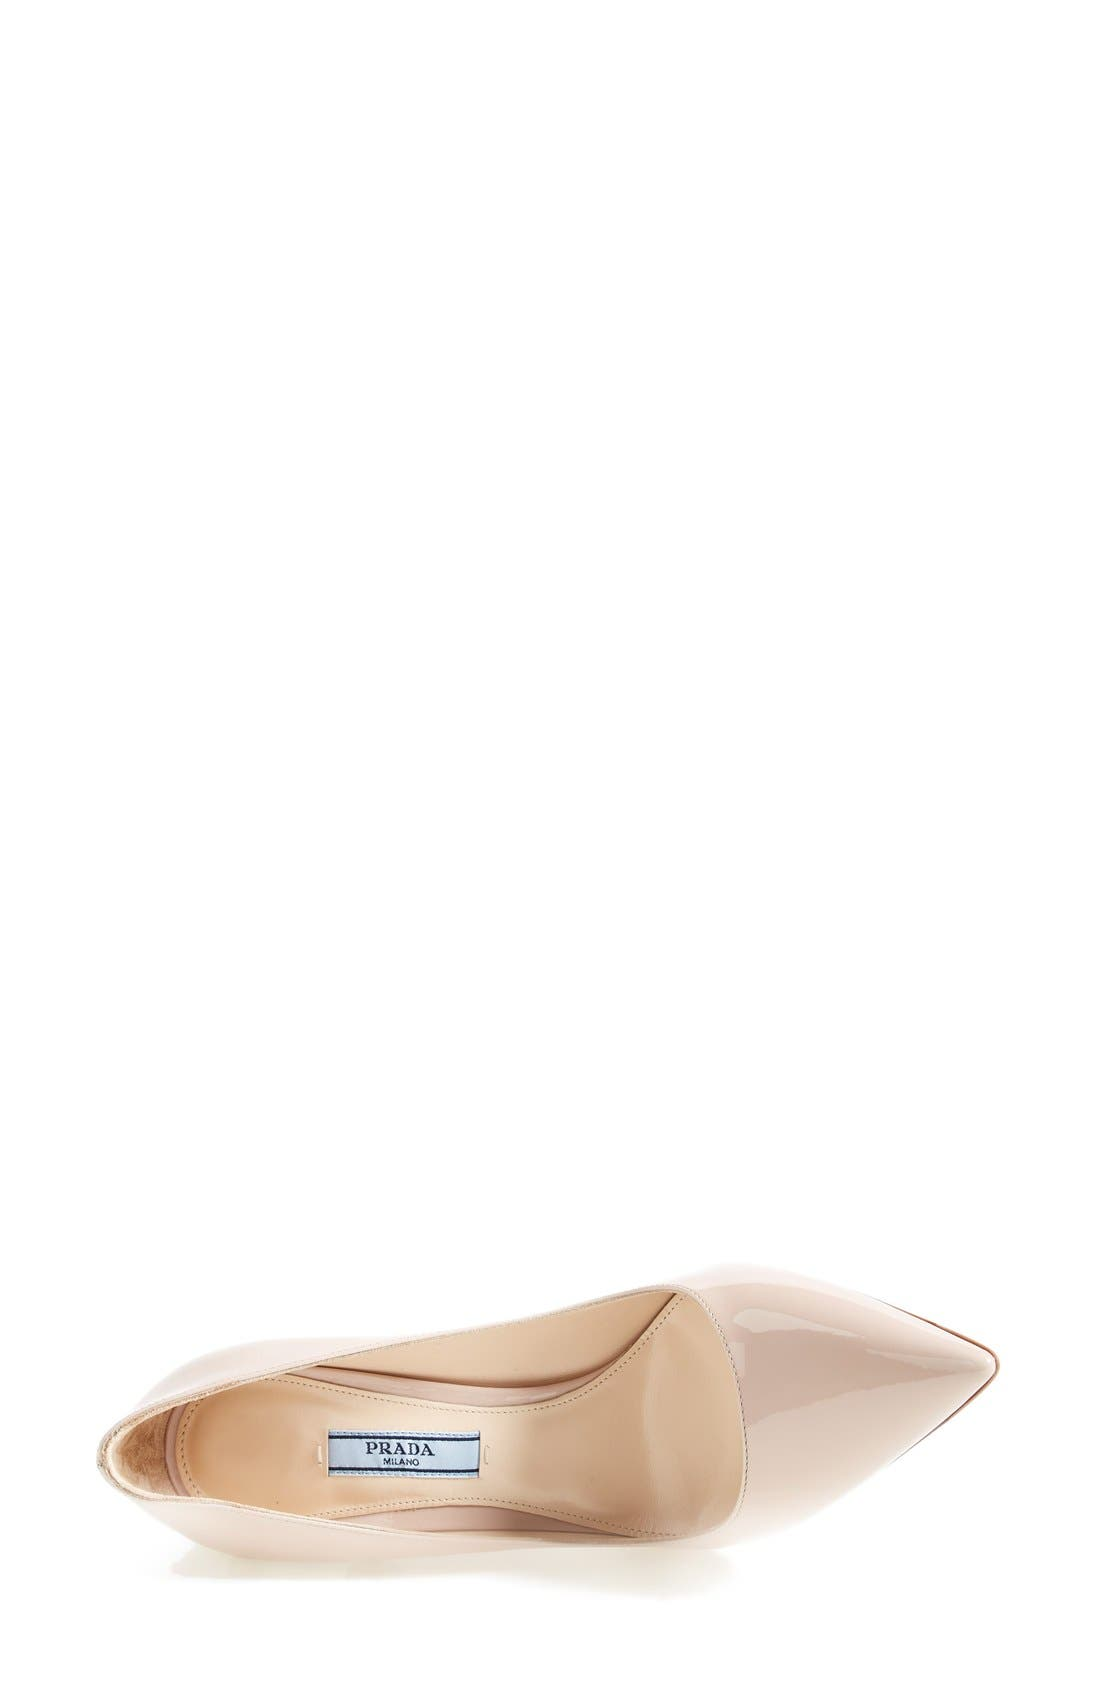 Pointy Toe Pump,                             Alternate thumbnail 3, color,                             Cipria Patent